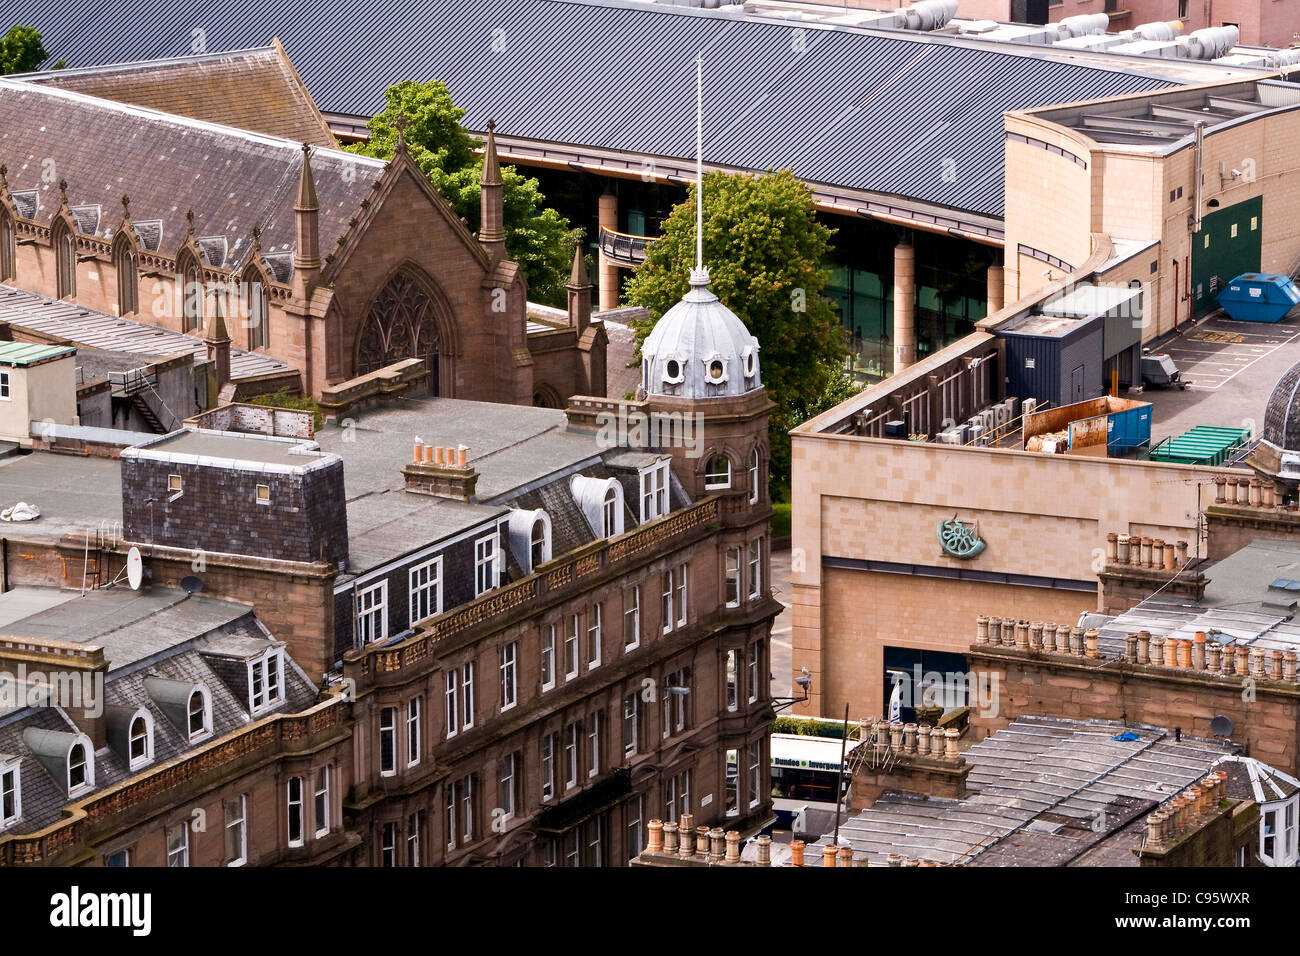 Ariel view of rooftops of buildings in central Dundee including the modern Overgate shopping mall and the old Steeple Stock Photo